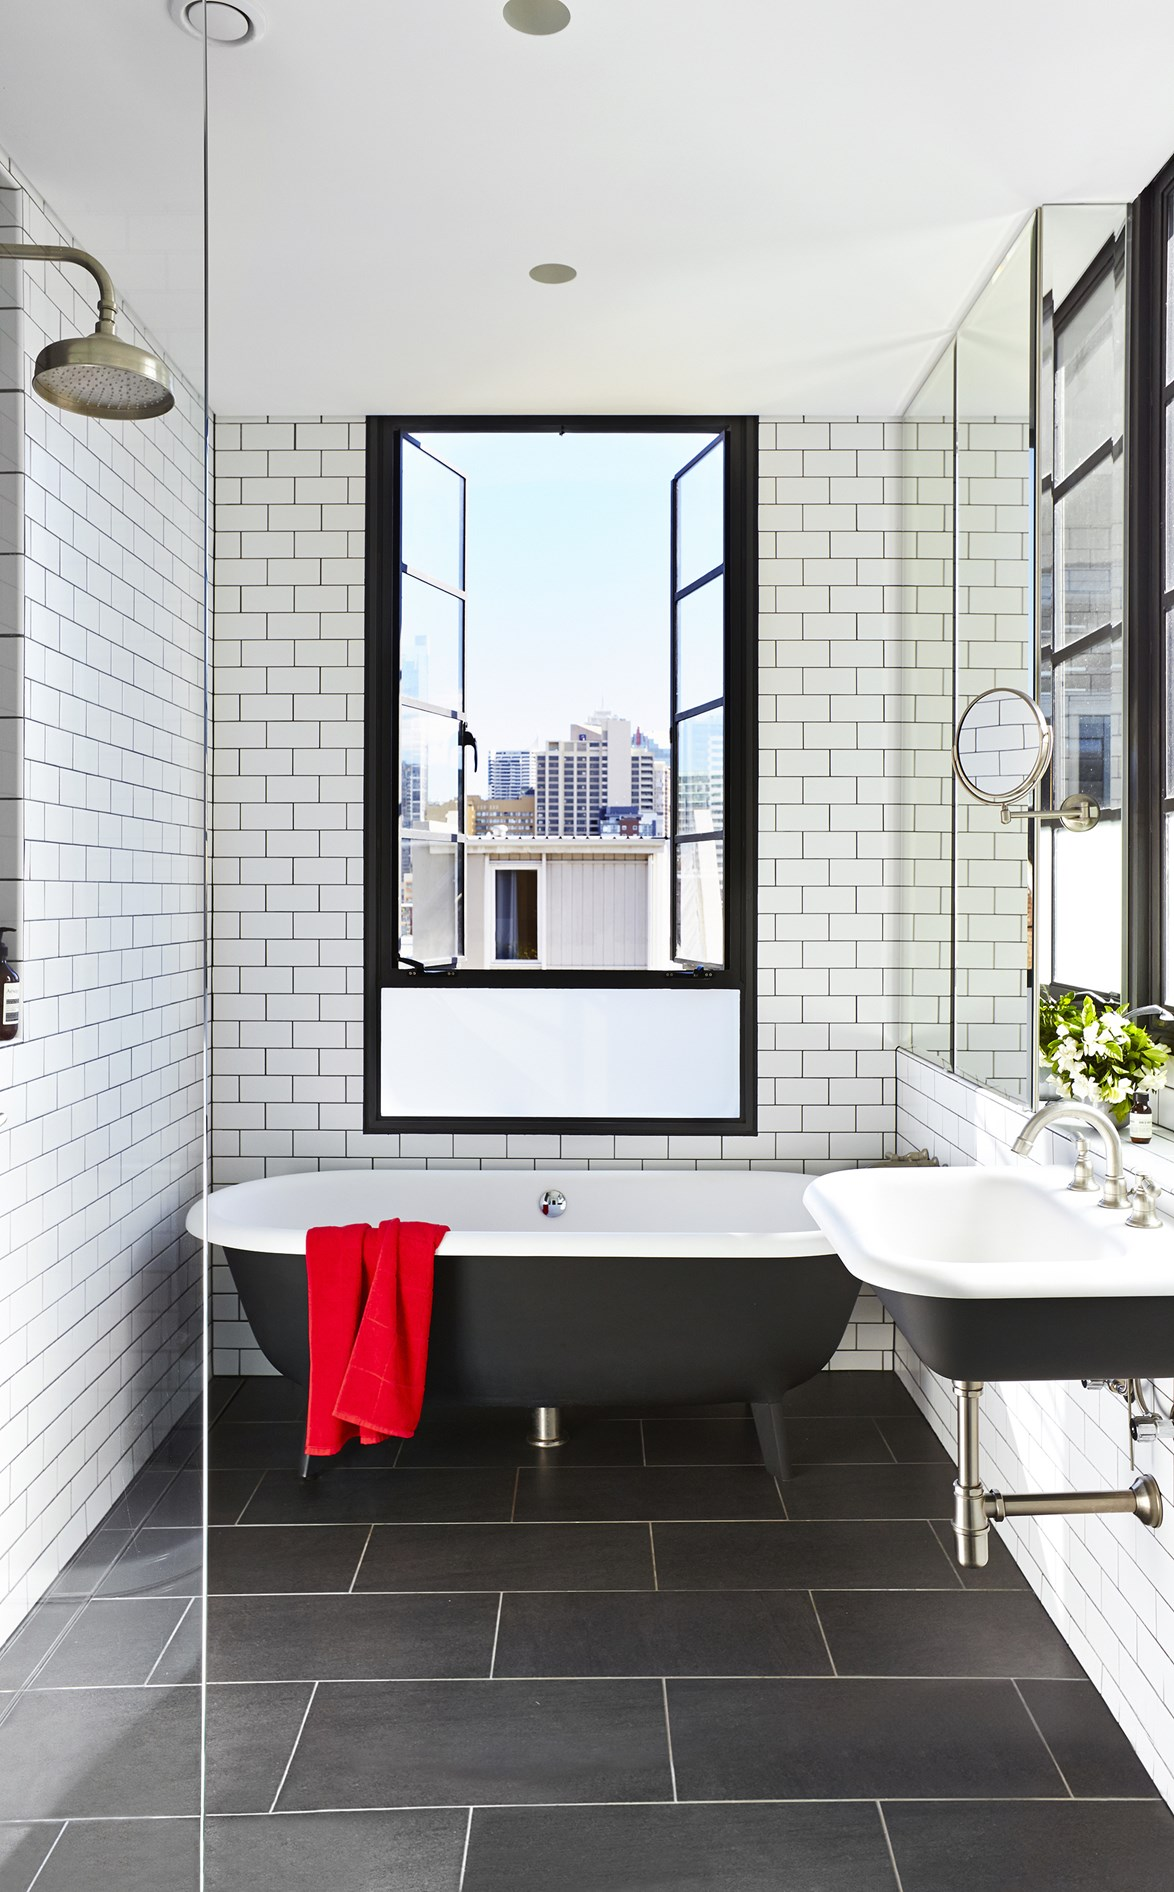 """Freestanding bath tubs, like this one in an [updated 1850s terrace house](https://www.homestolove.com.au/gallery-1850s-sydney-terrace-gets-a-modern-makeover-2396